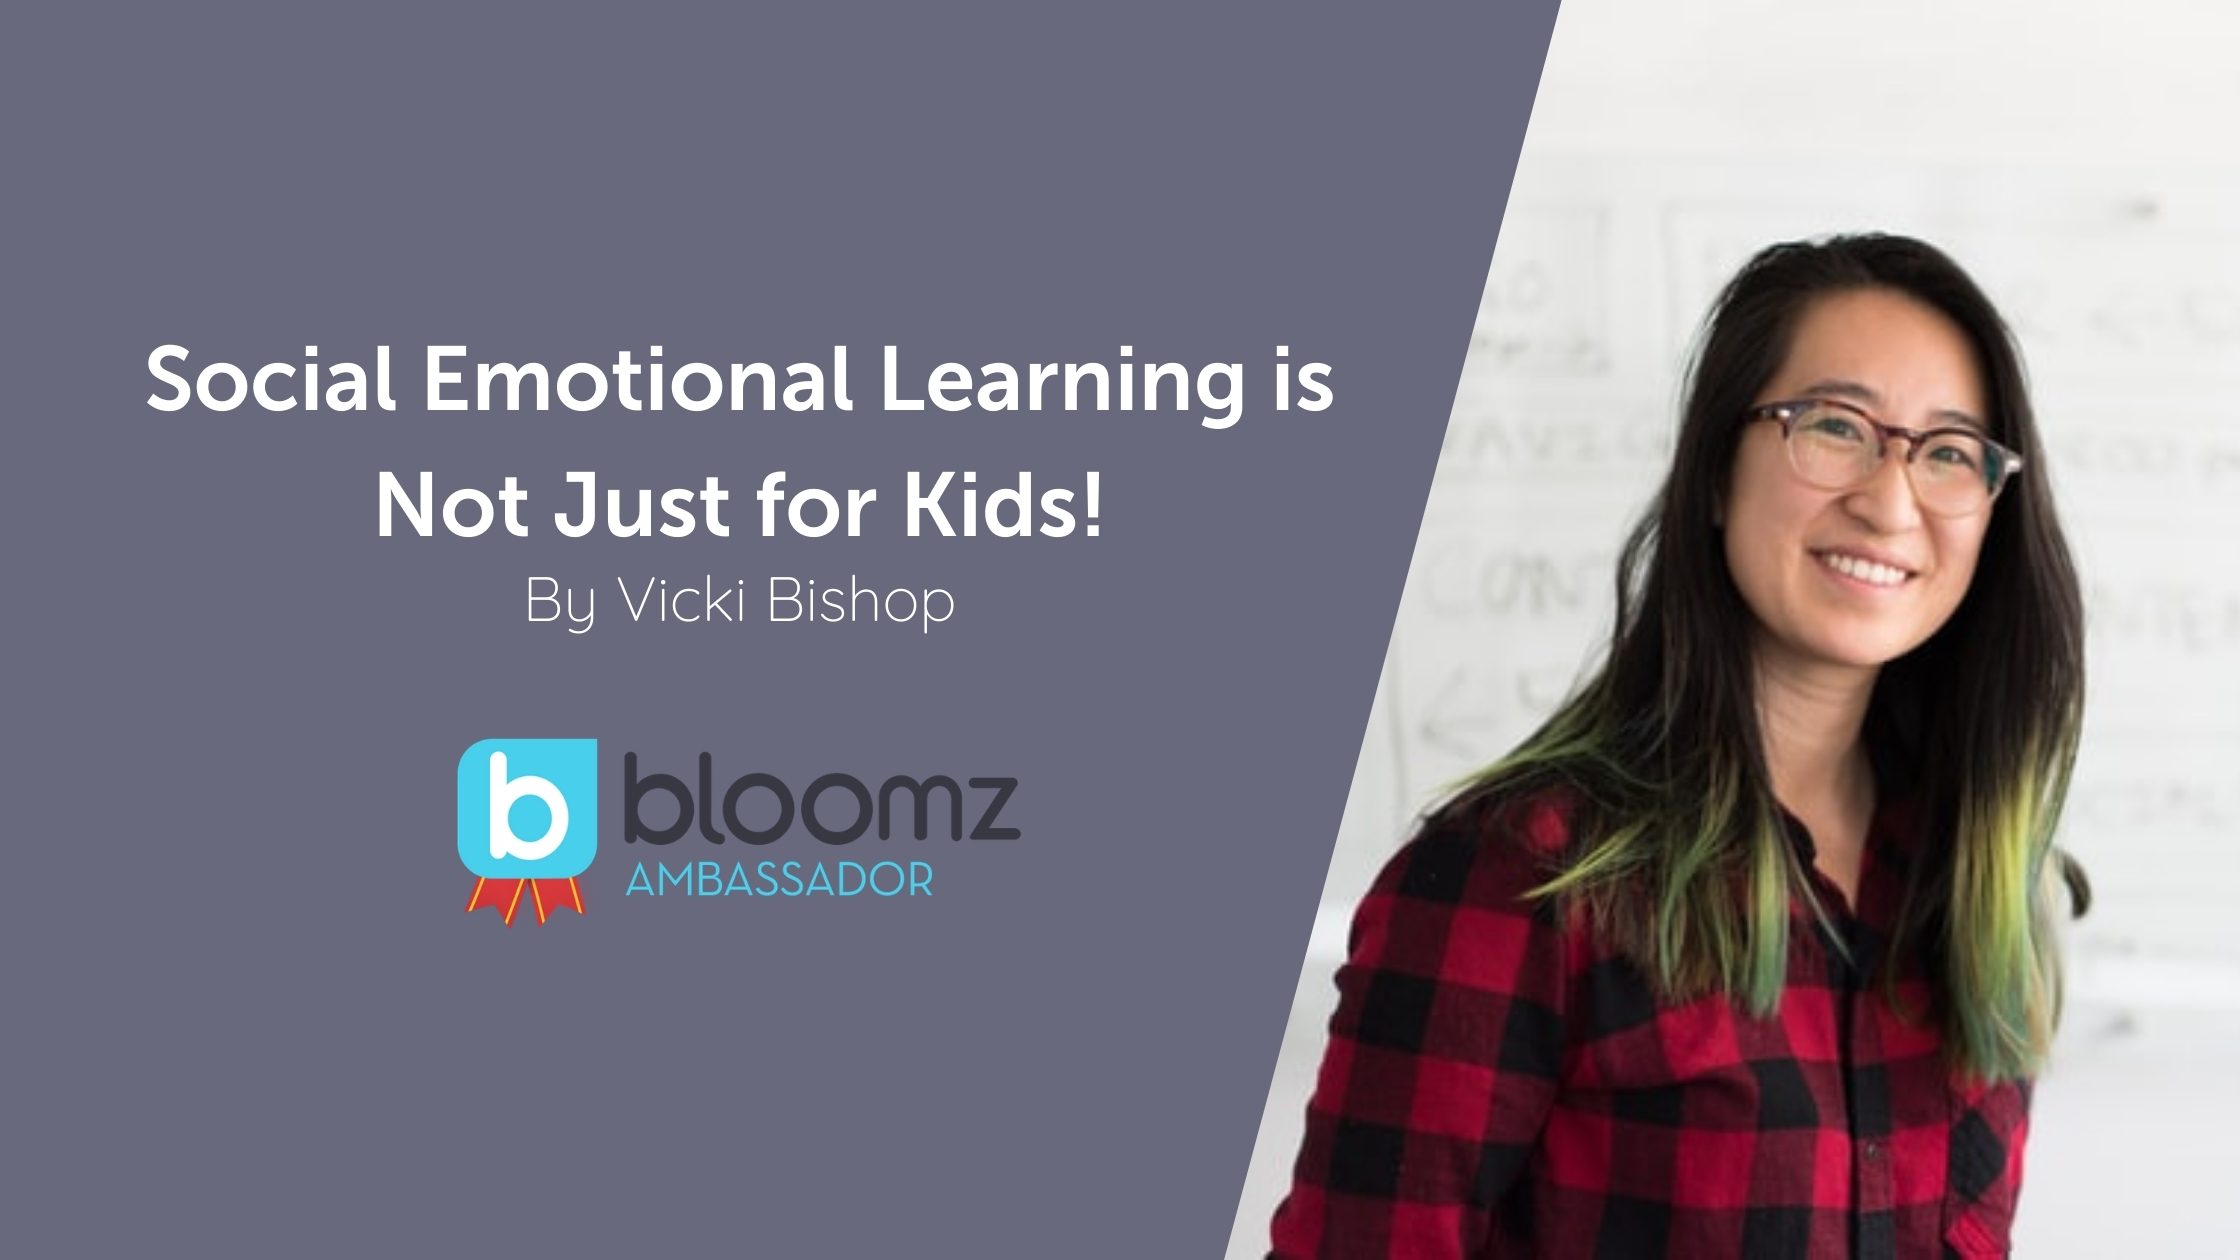 Social Emotional Learning is Not Just for Students!